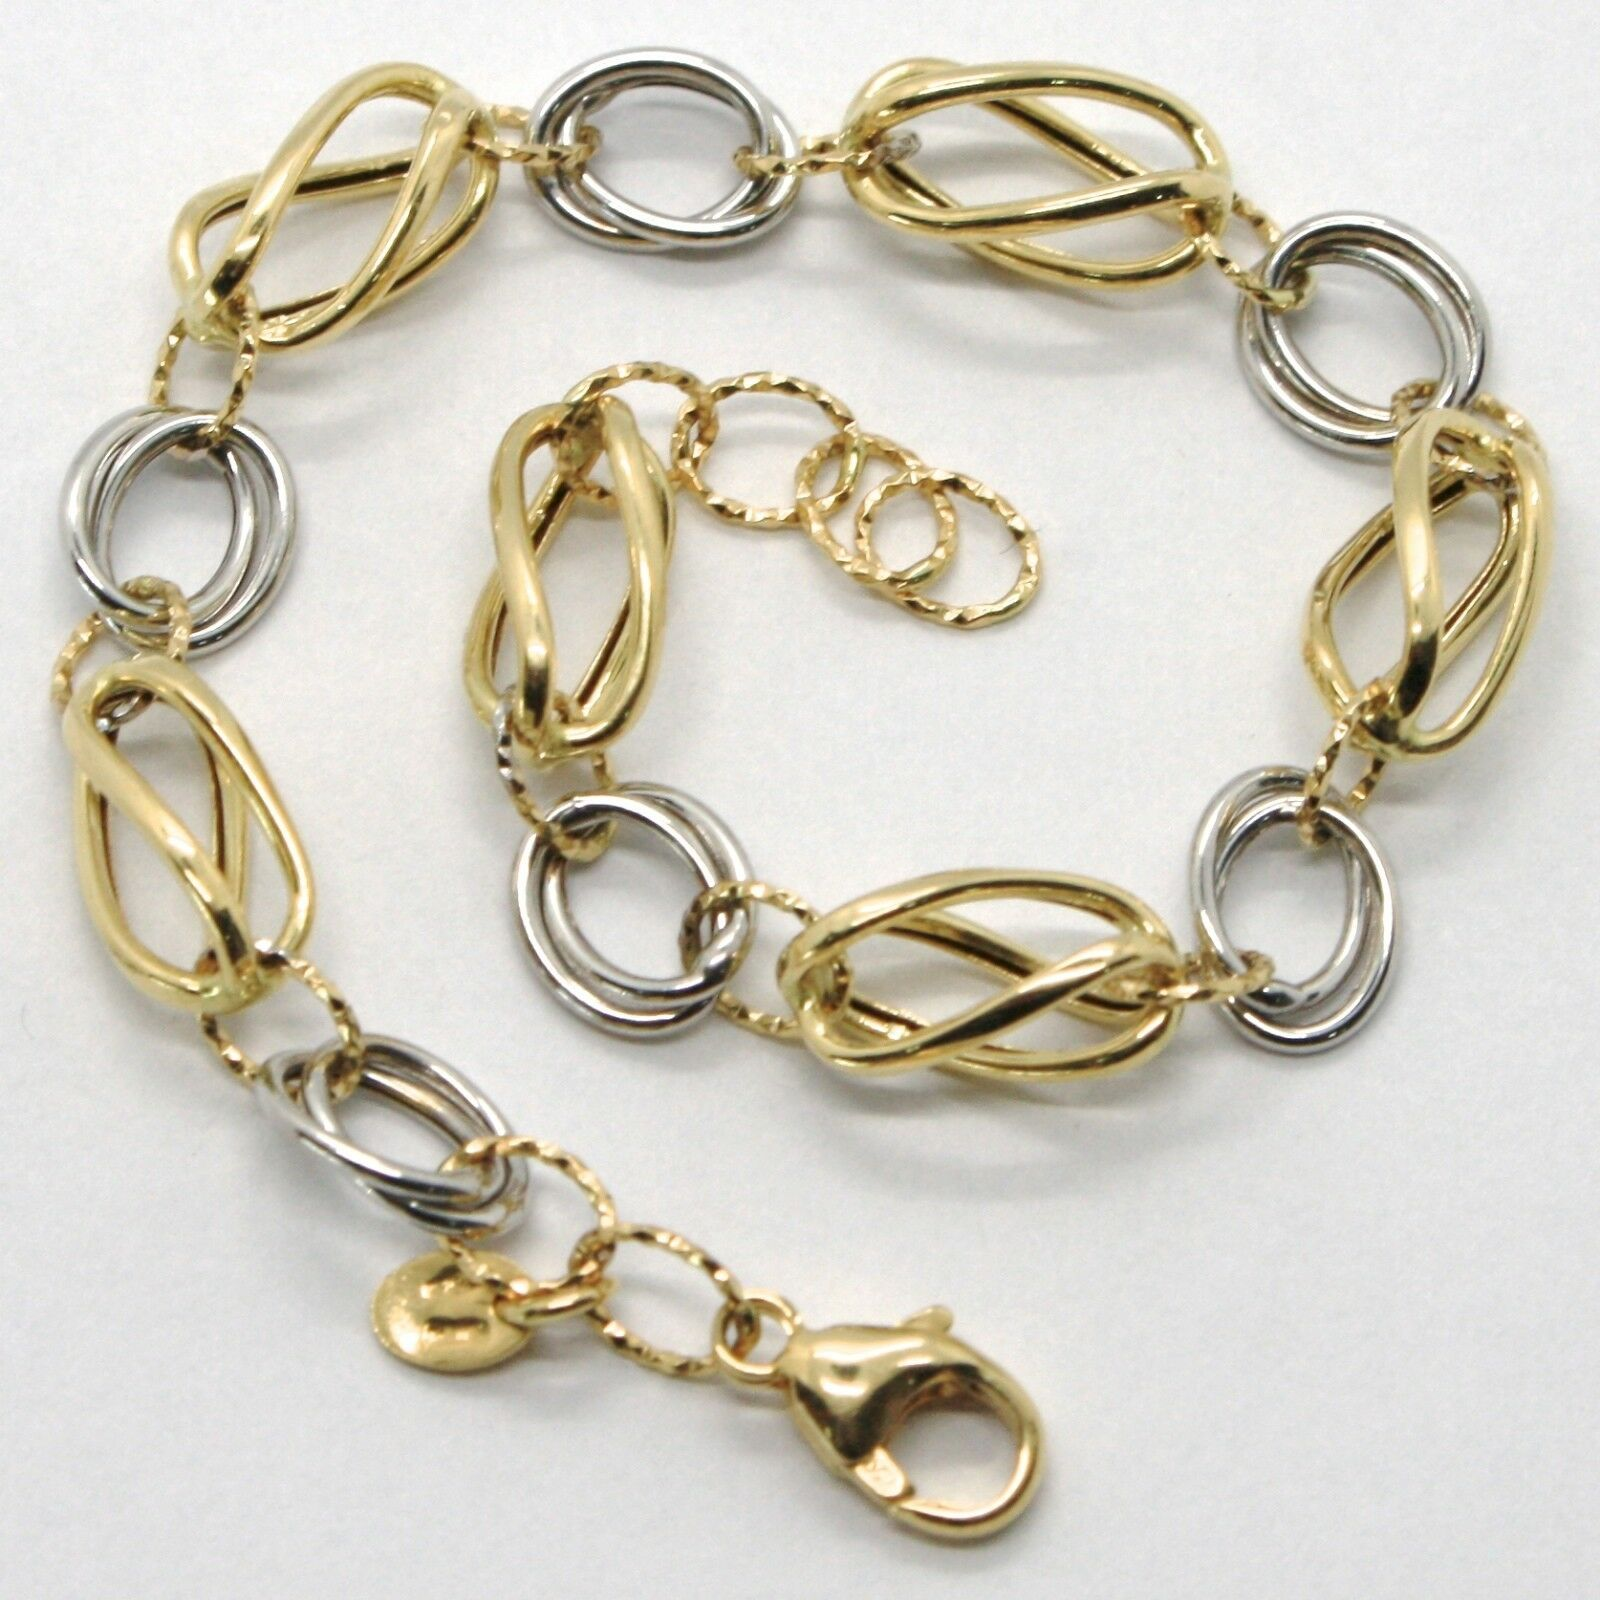 18K WHITE & YELLOW GOLD BRACELET ALTERNATE FINELY WORKED TWISTED OVAL LINK